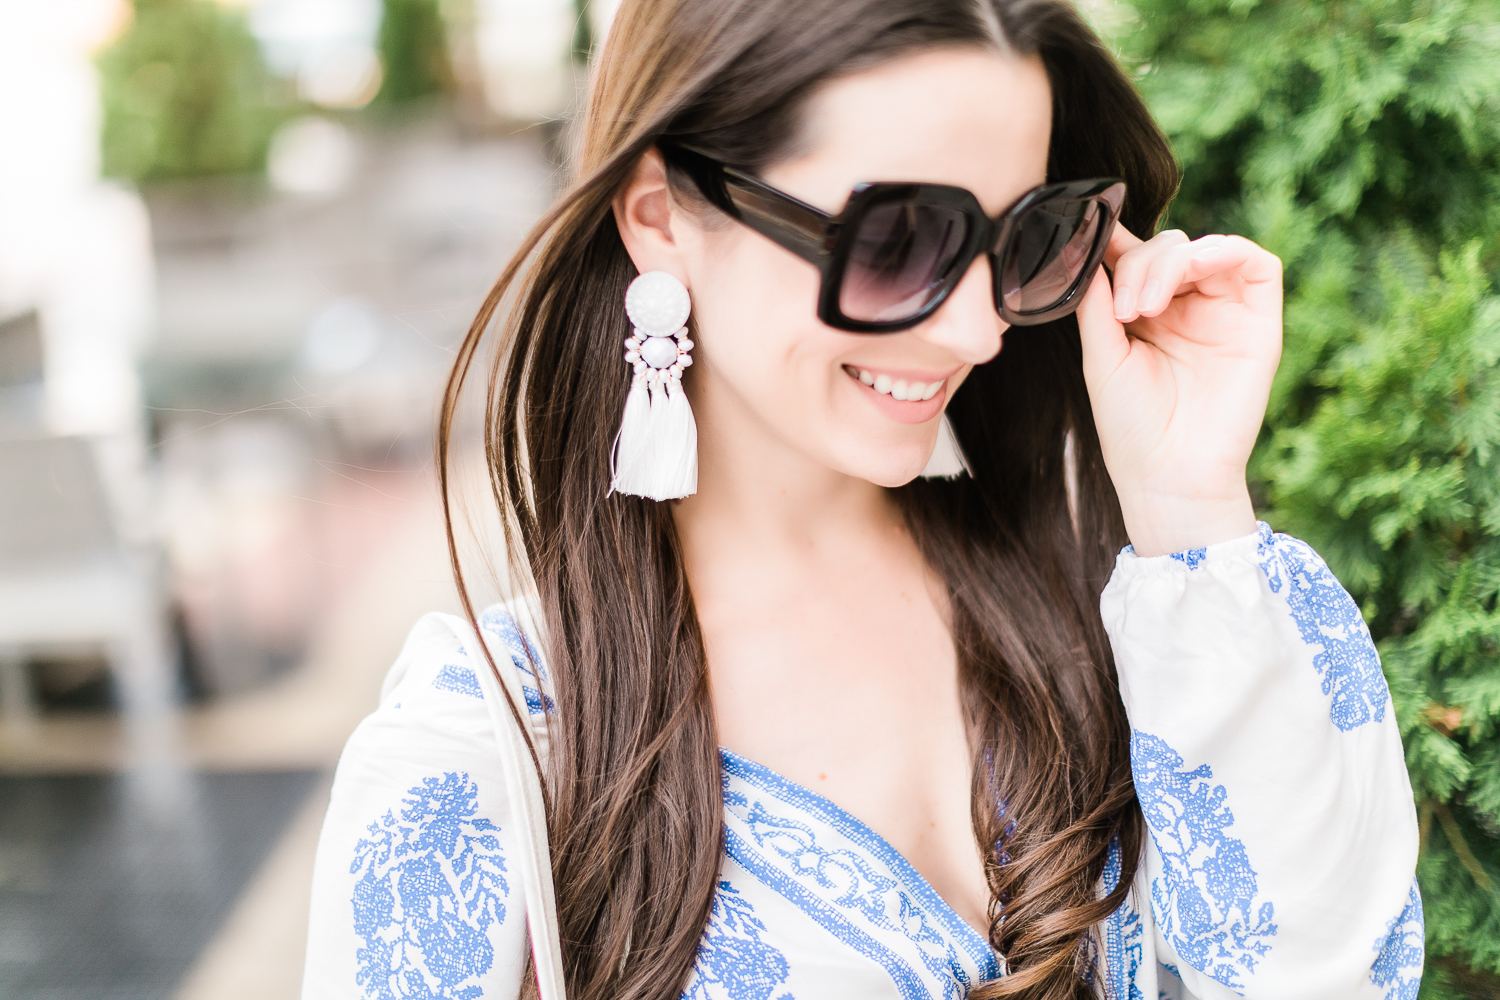 41537a1c08 ... Score or Scam: The Truth about Shein Clothing by affordable fashion  blogger Stephanie Ziajka from